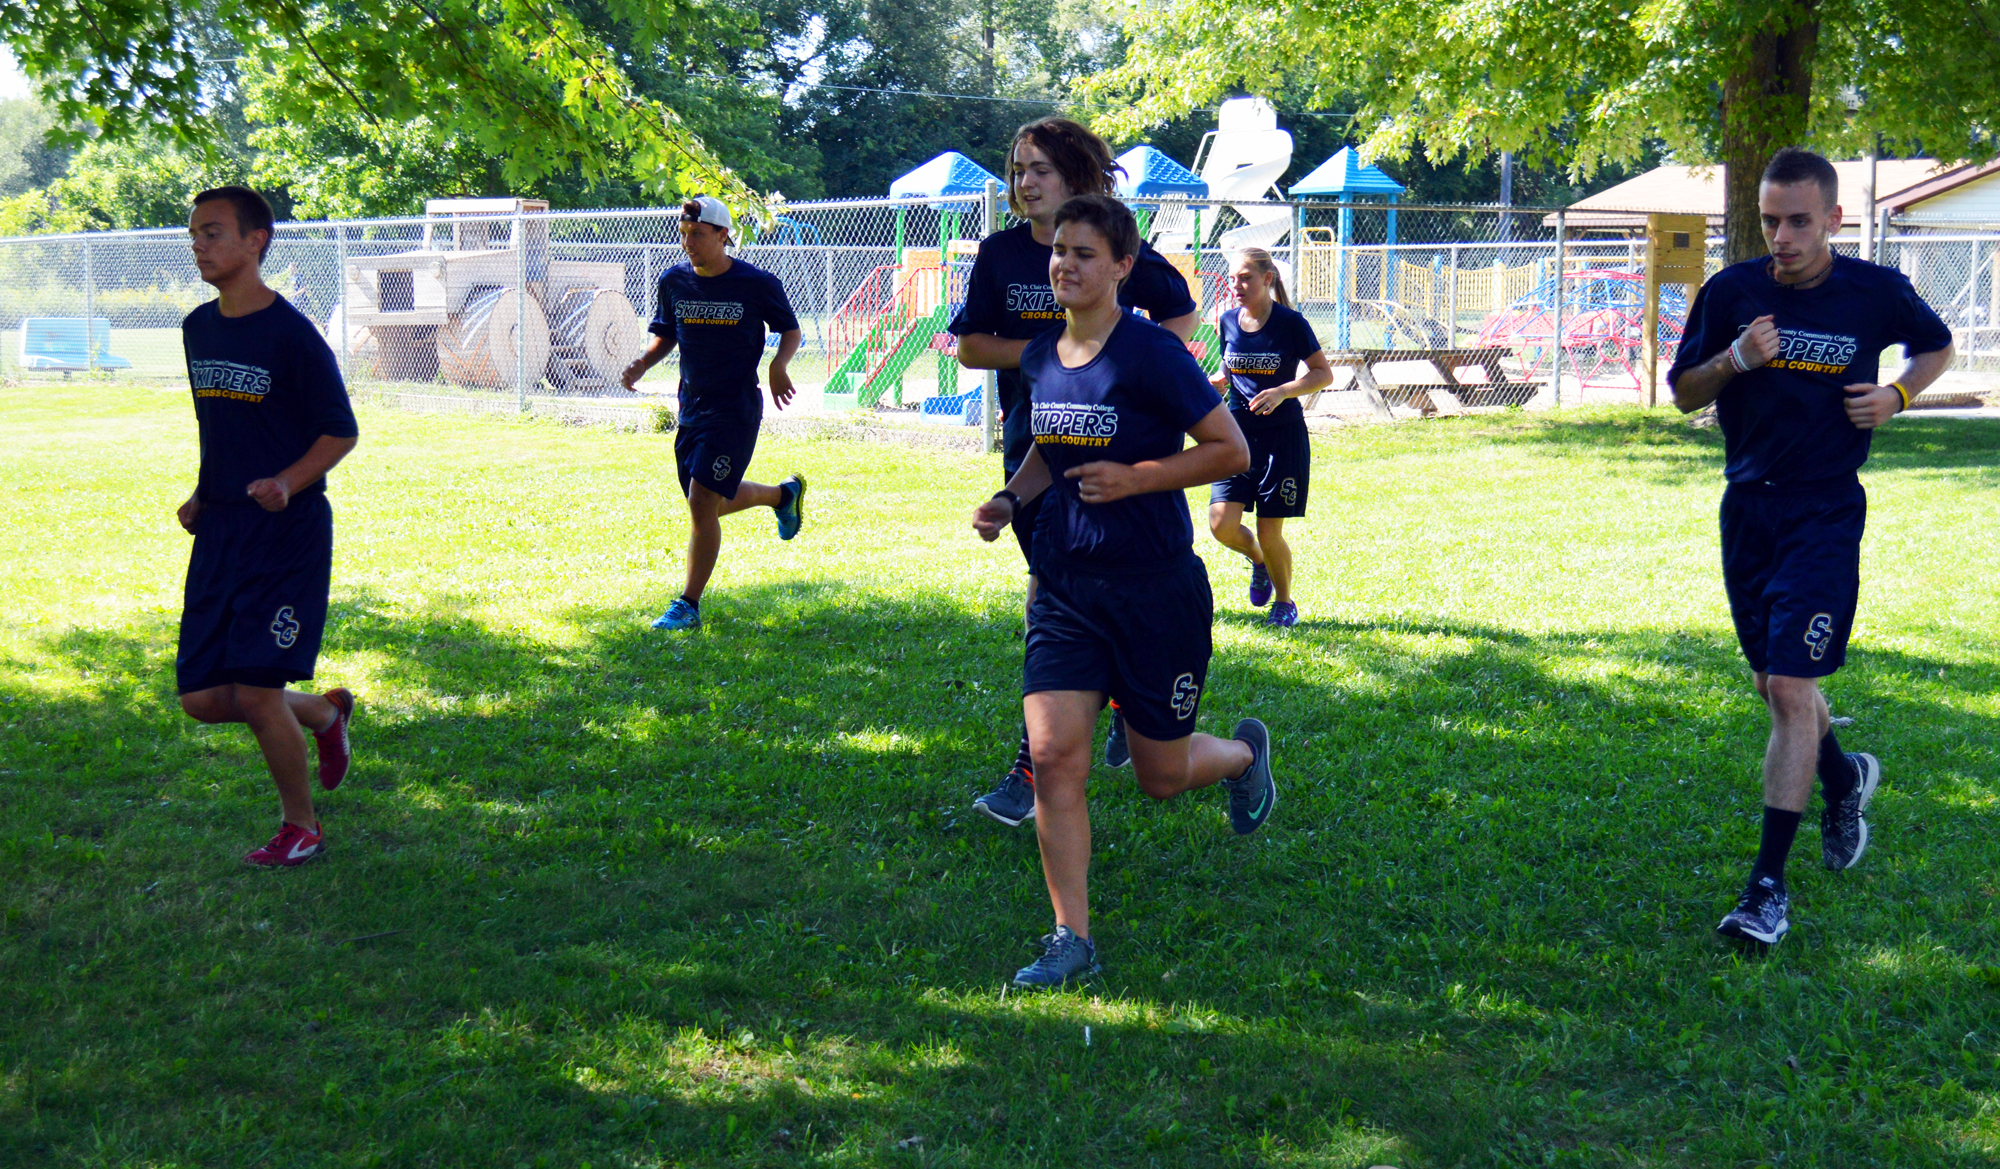 Runners excited to be part of new cross country program at SC4